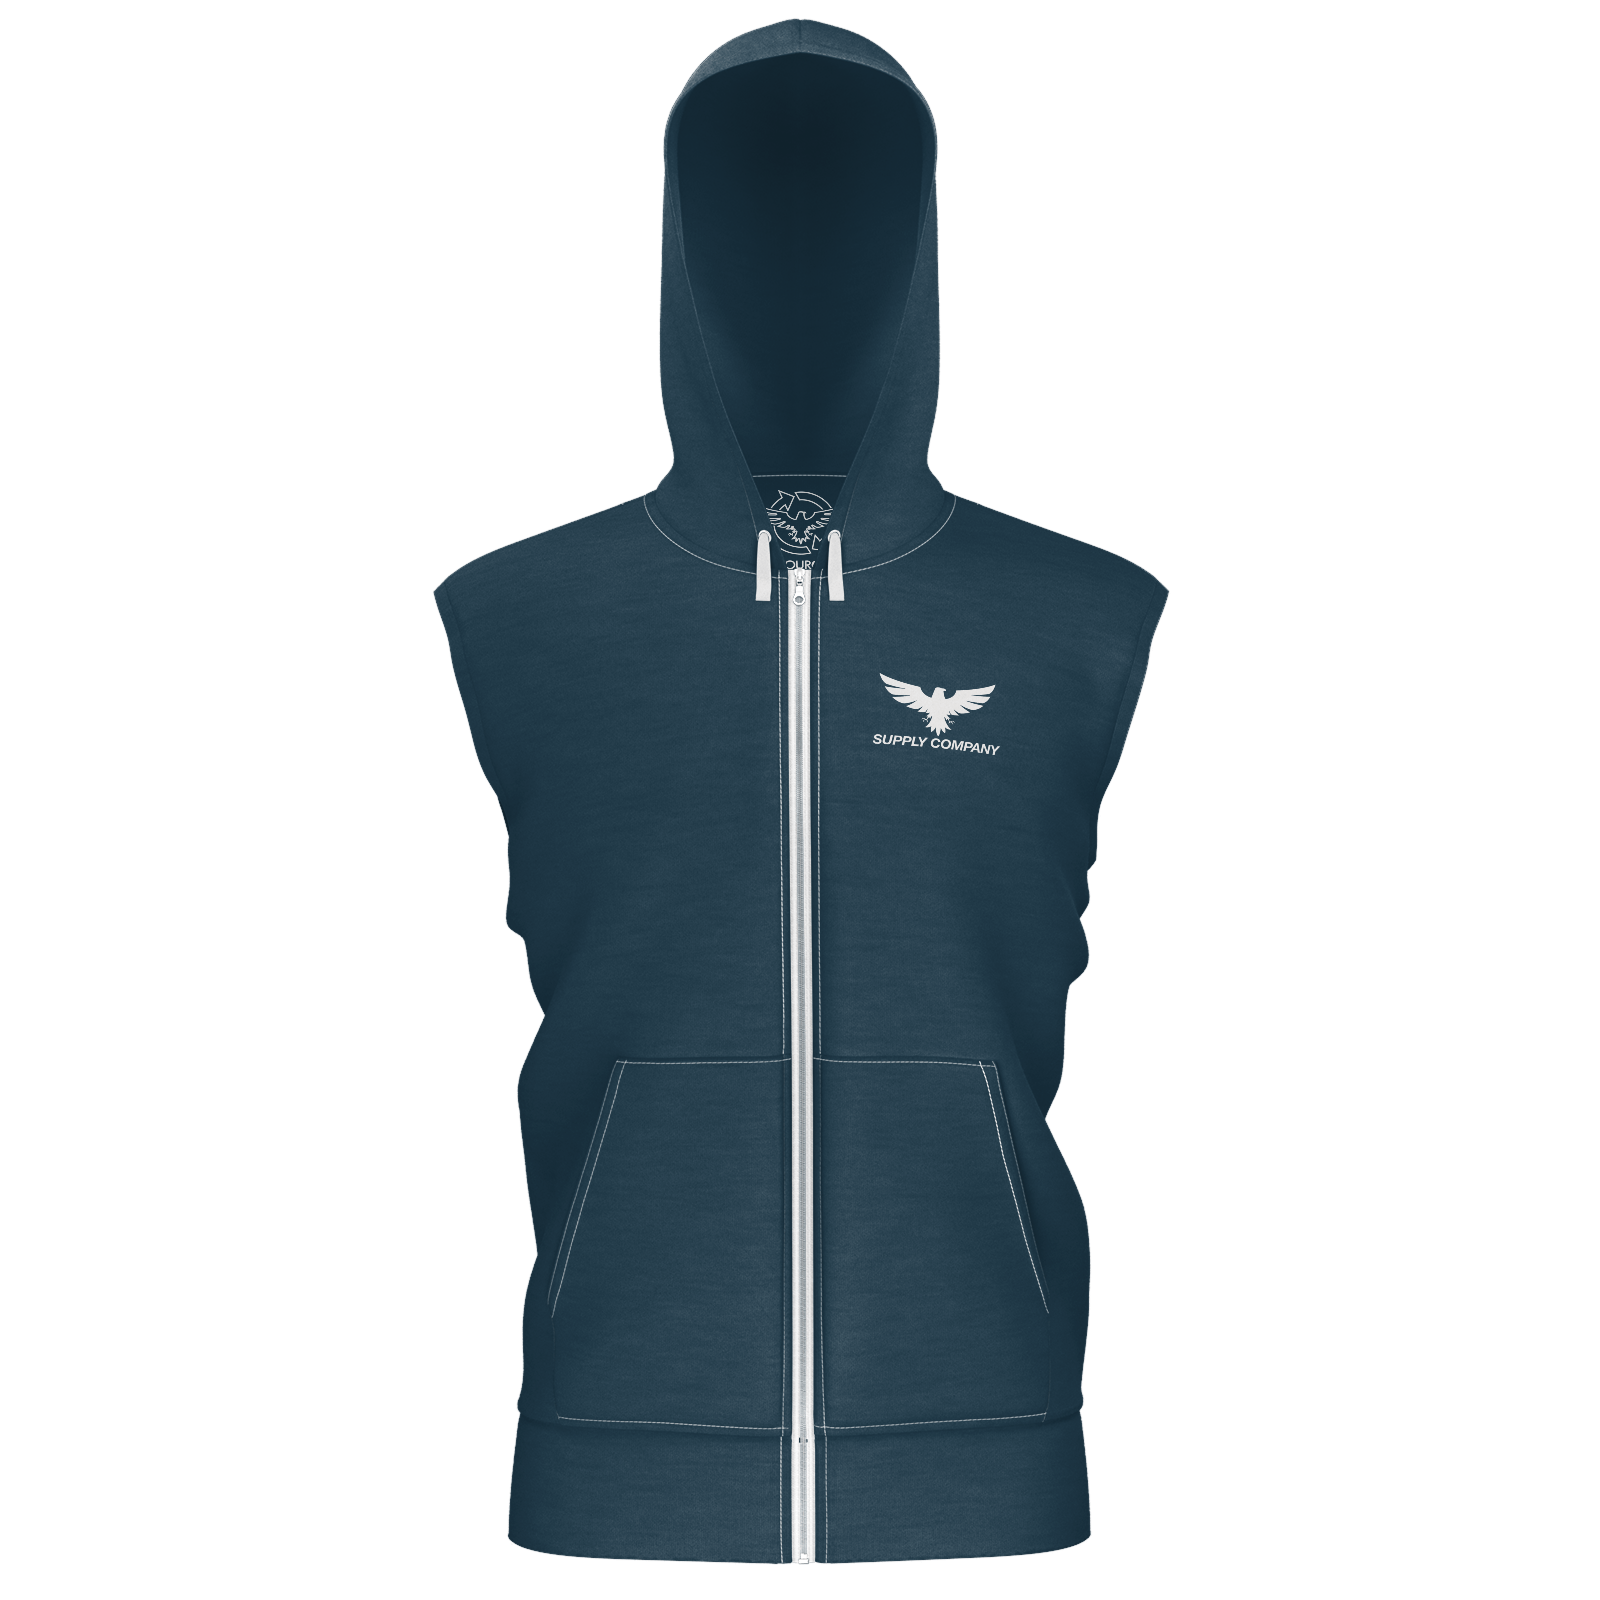 Men's Supply Co. Navy w/White Sustainable Sleeveless Lake Tahoe Zip-Up Hoodie - Find Your Coast Supply Co.